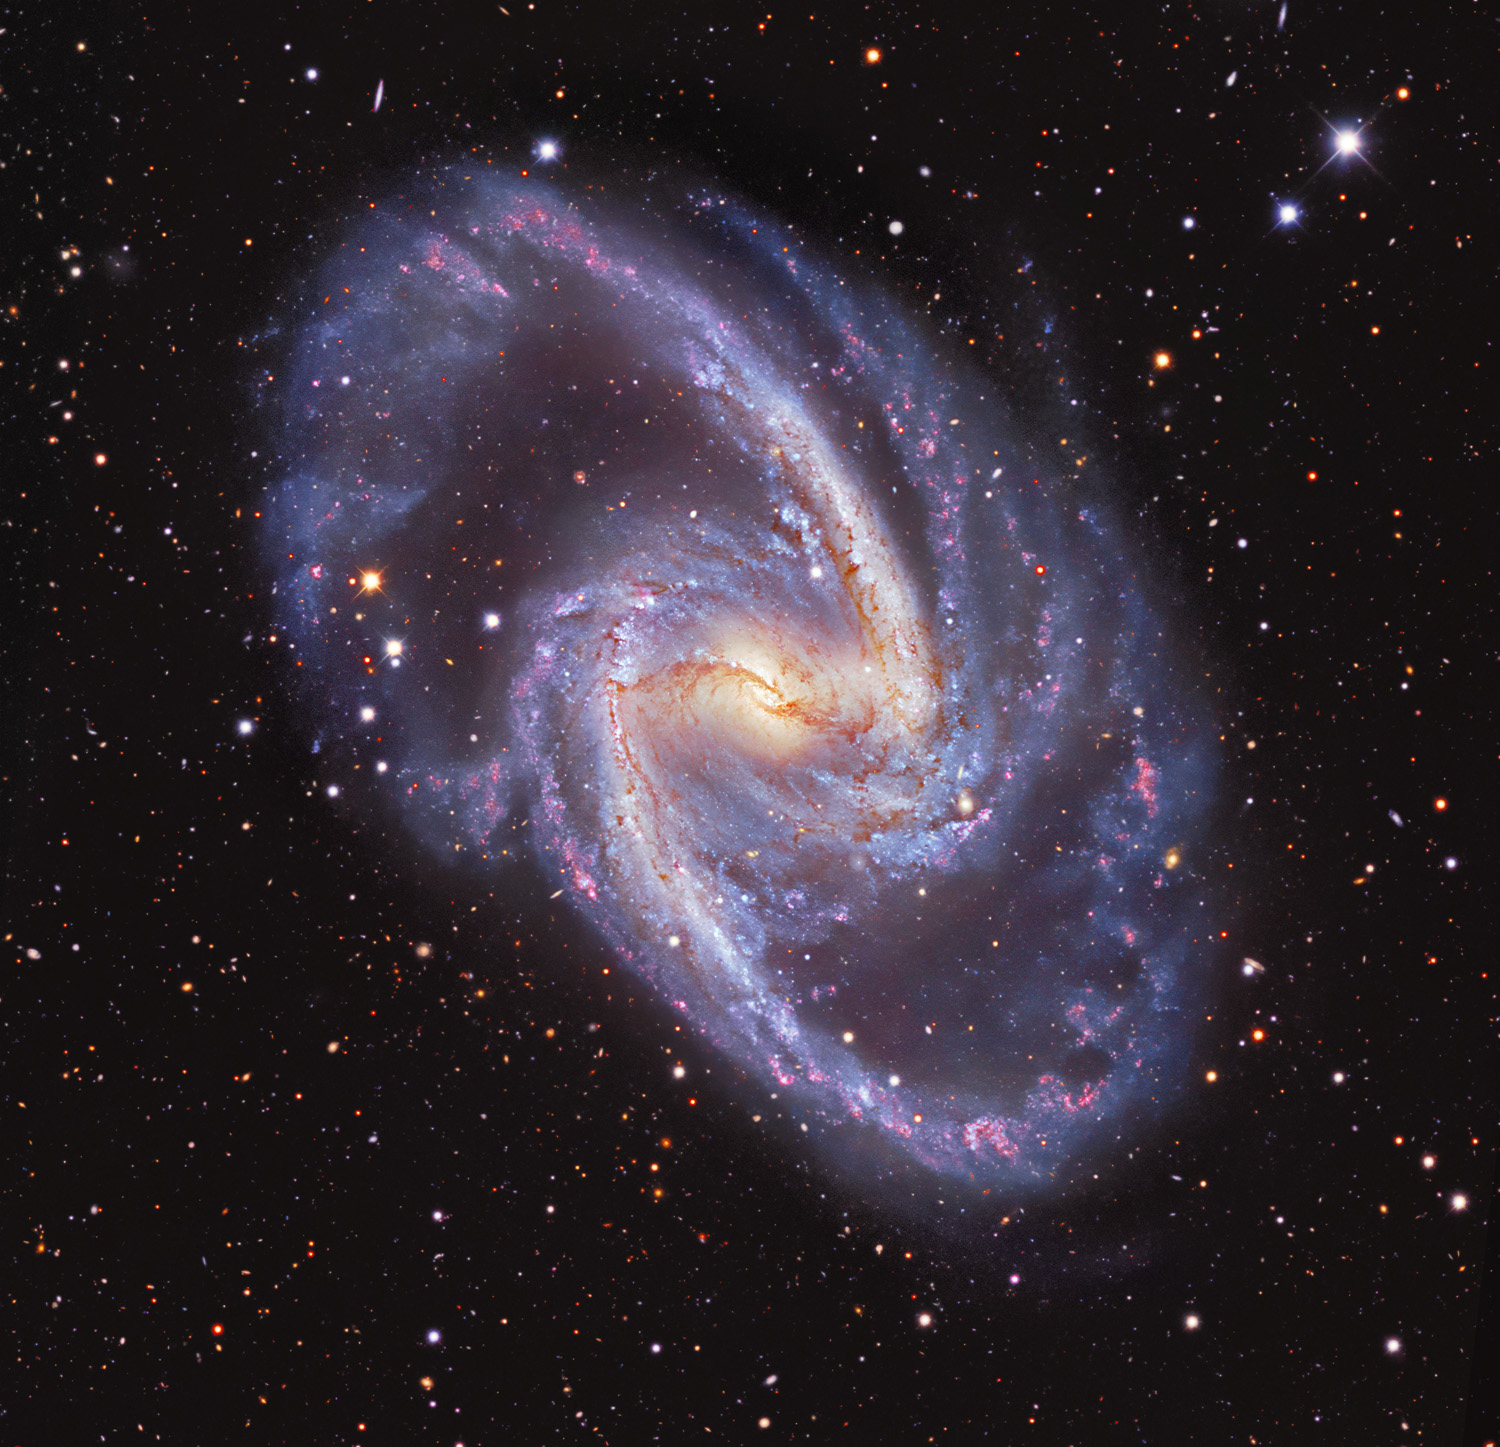 Spectacular image of the Great Barred Spiral Galaxy NGC 1365